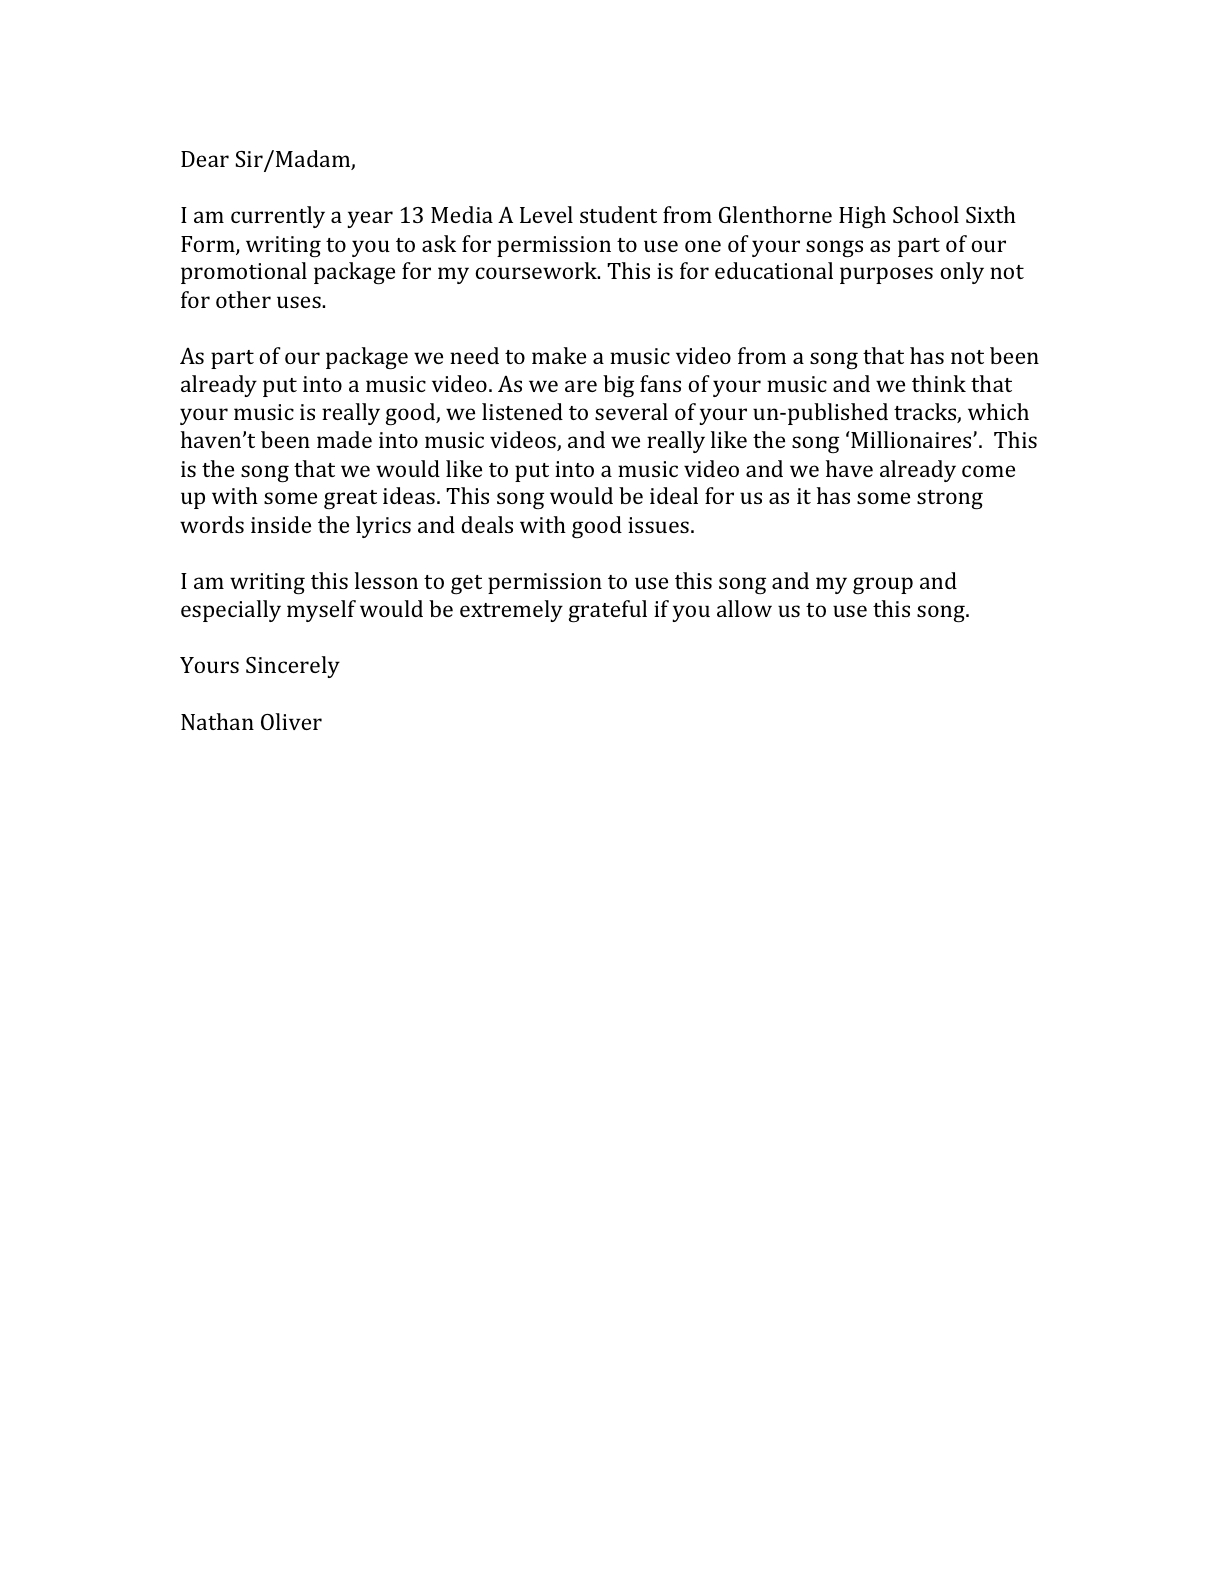 Nathan Powell Permission Letter